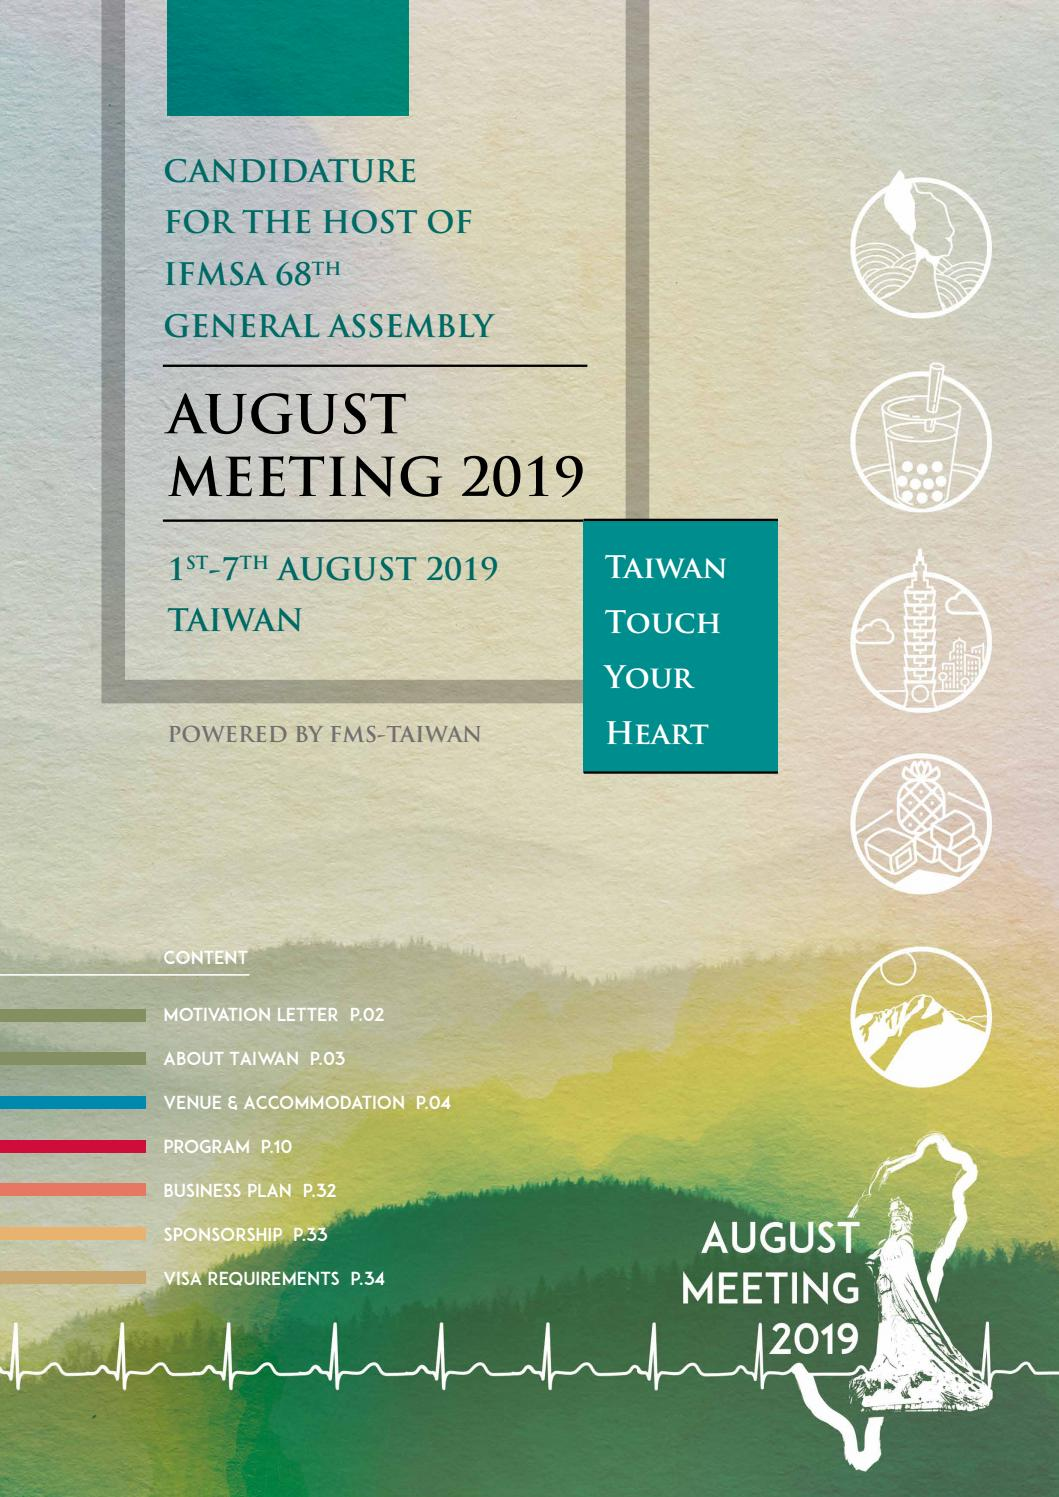 IFMSA August Meeting 2019-Taiwan Candidature by AM2019Taiwan